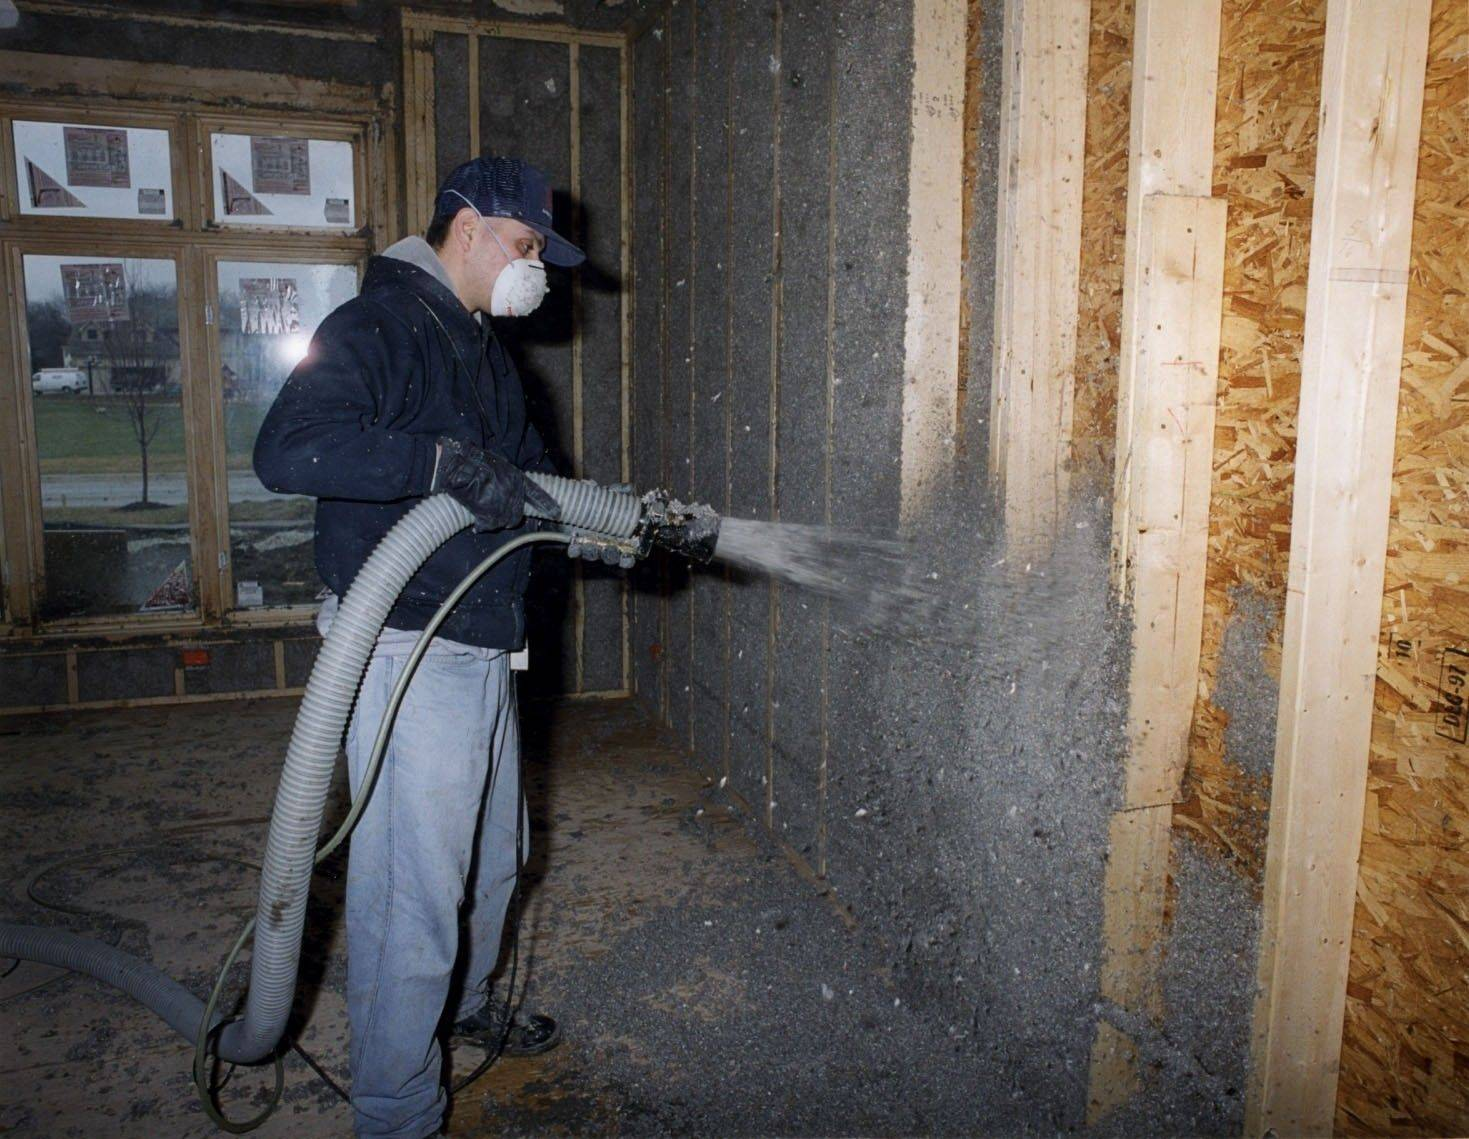 Cellulose blown-in insulation is used by Airhart Construction to seal the wall cavity and better reduce air loss and infiltration.